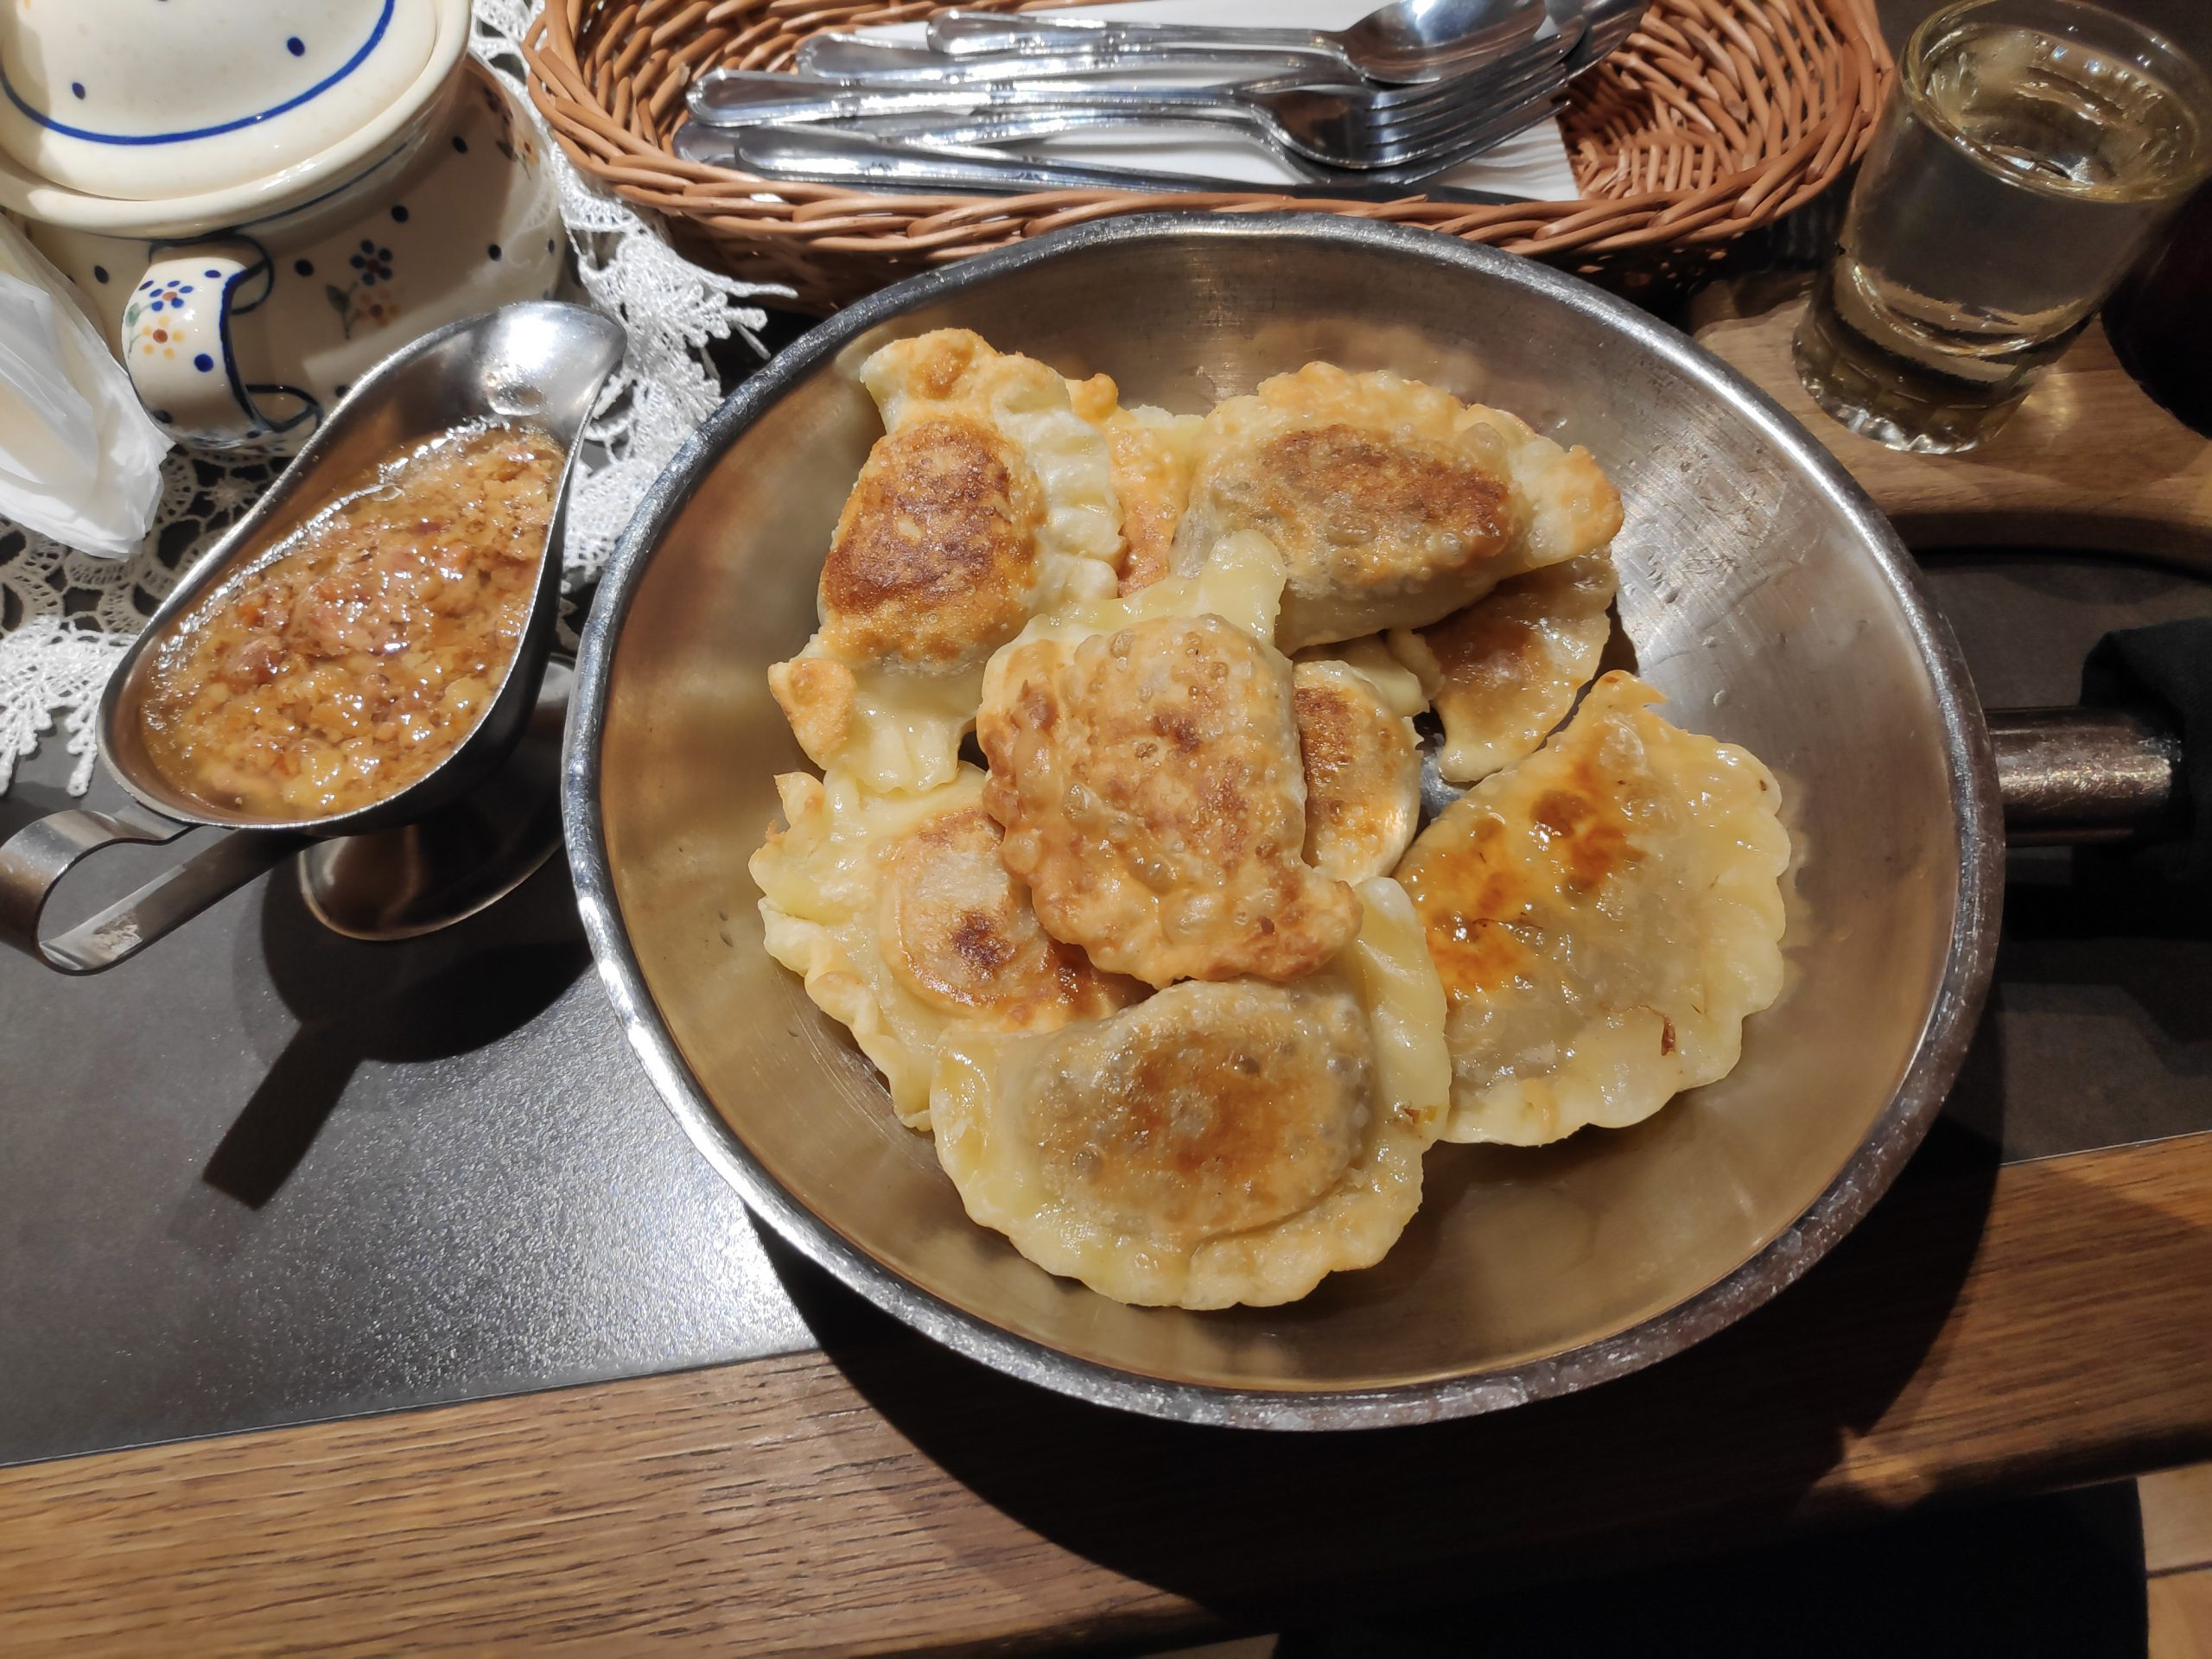 Fried pierogi, filled with different kind of meats and vegetables. The sauce on the left I think was melted butter/fat with something inside. Needles to say I came back 2kg heavier.